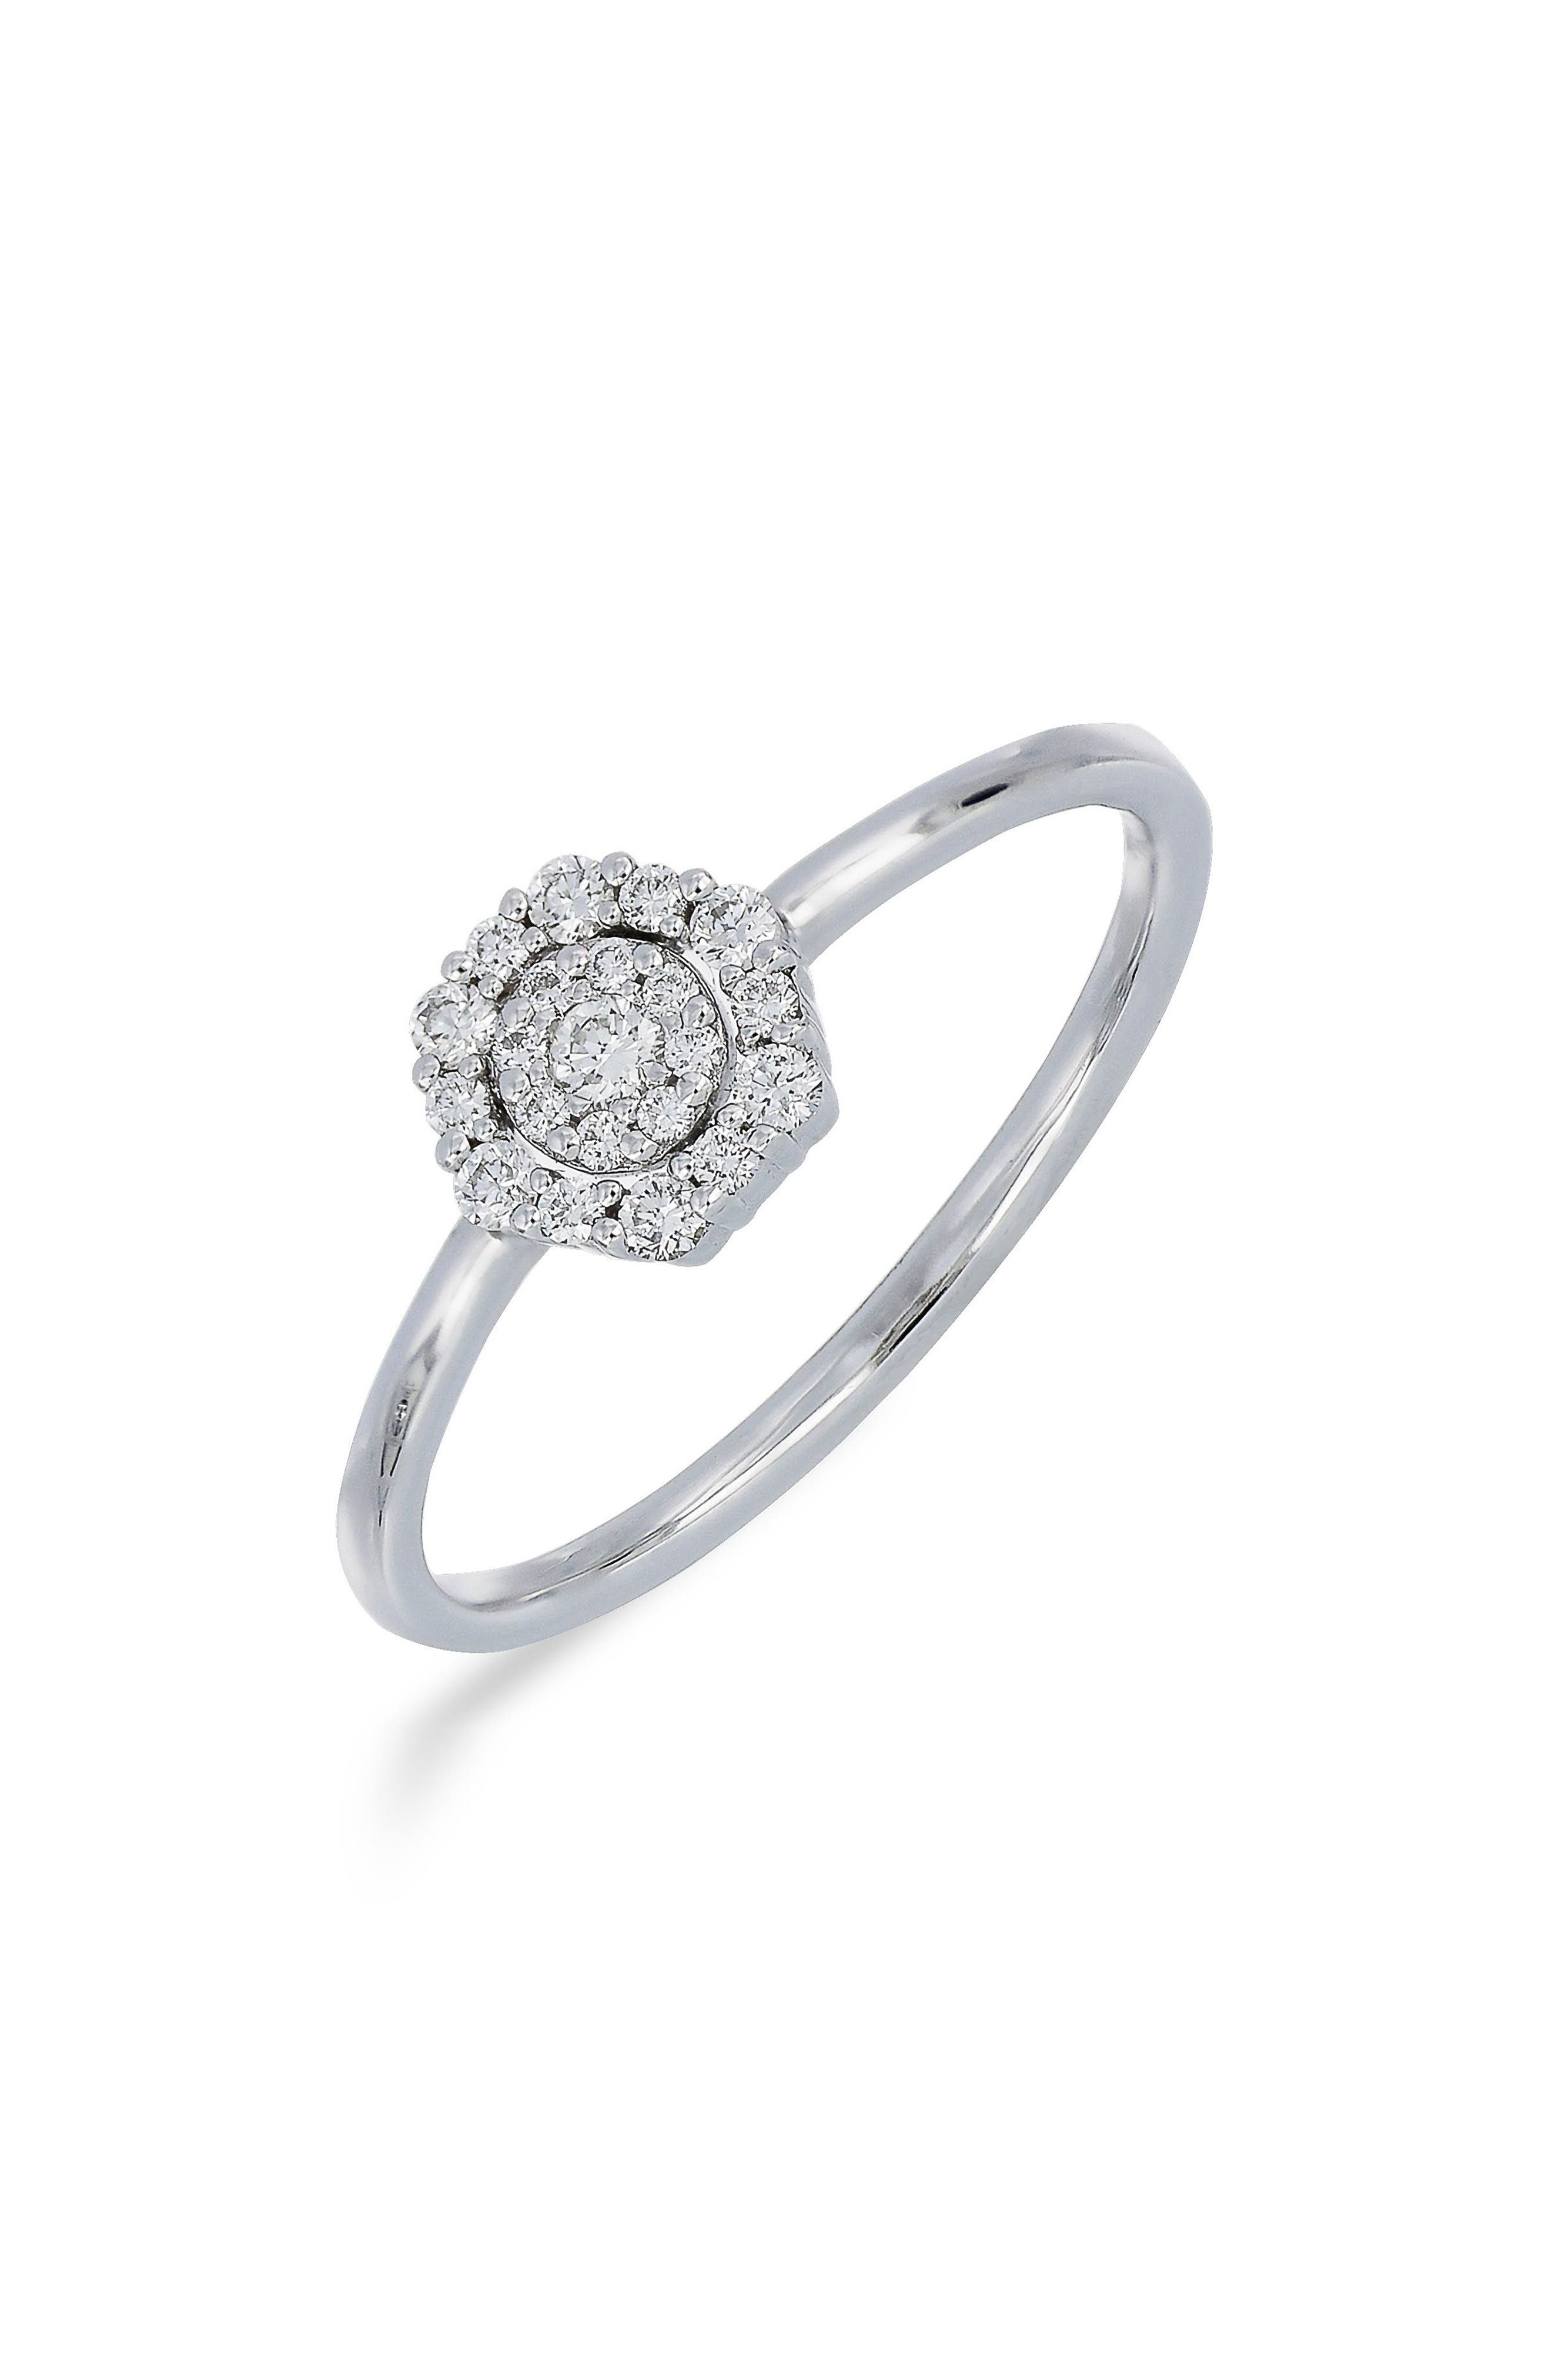 Main Image - Bony Levy Diamond Cluster Ring (Nordstrom Exclusive)